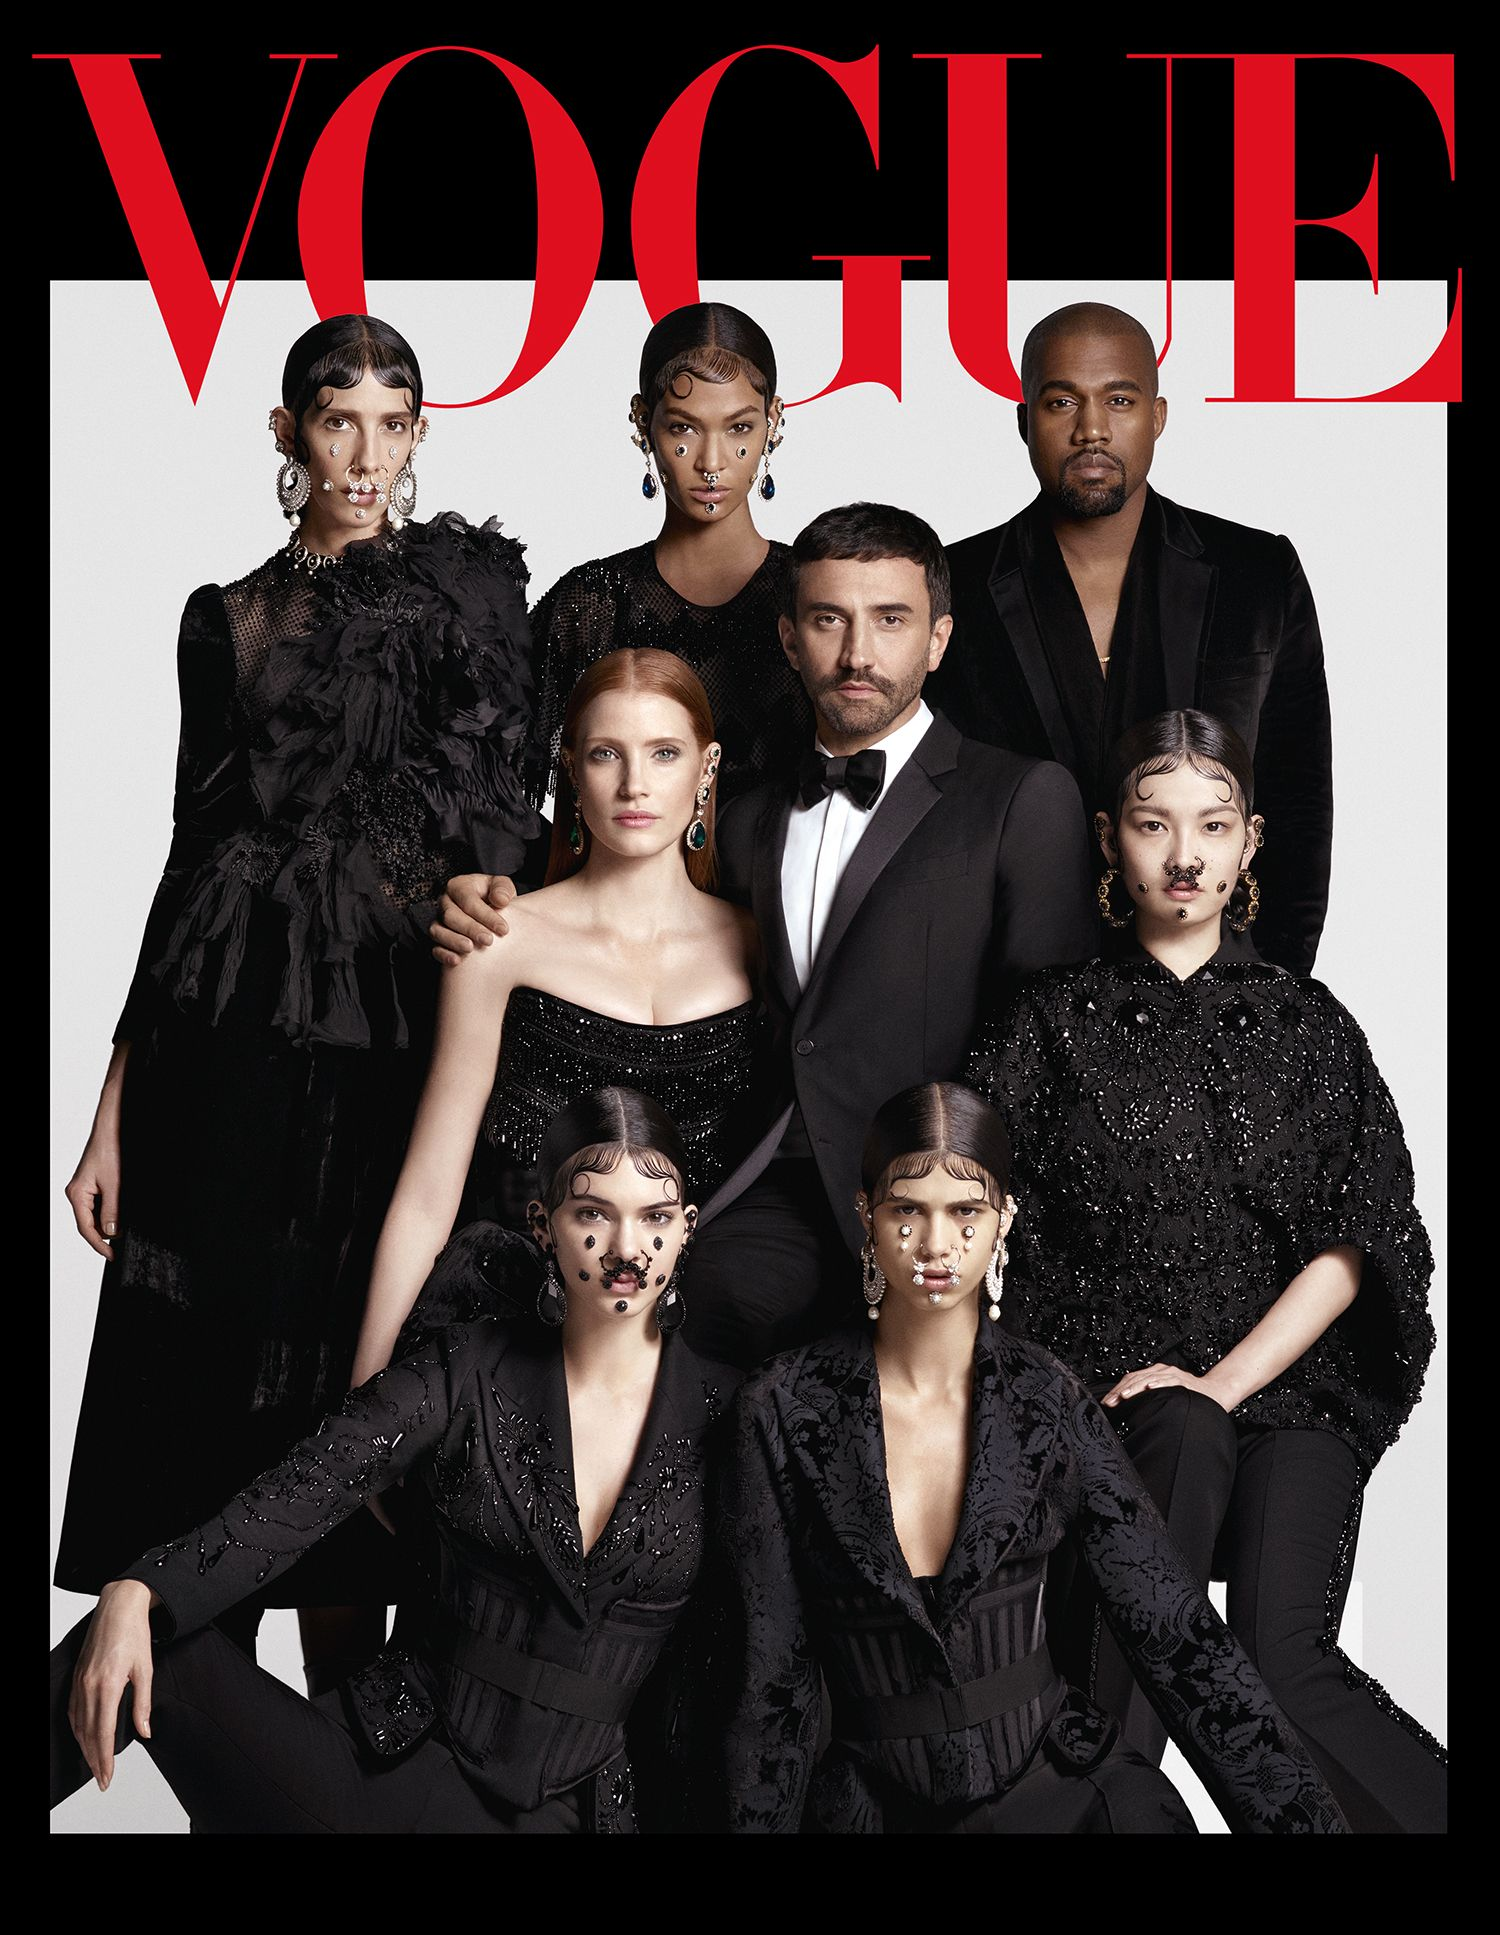 Japan vogue august givenchy gang photo